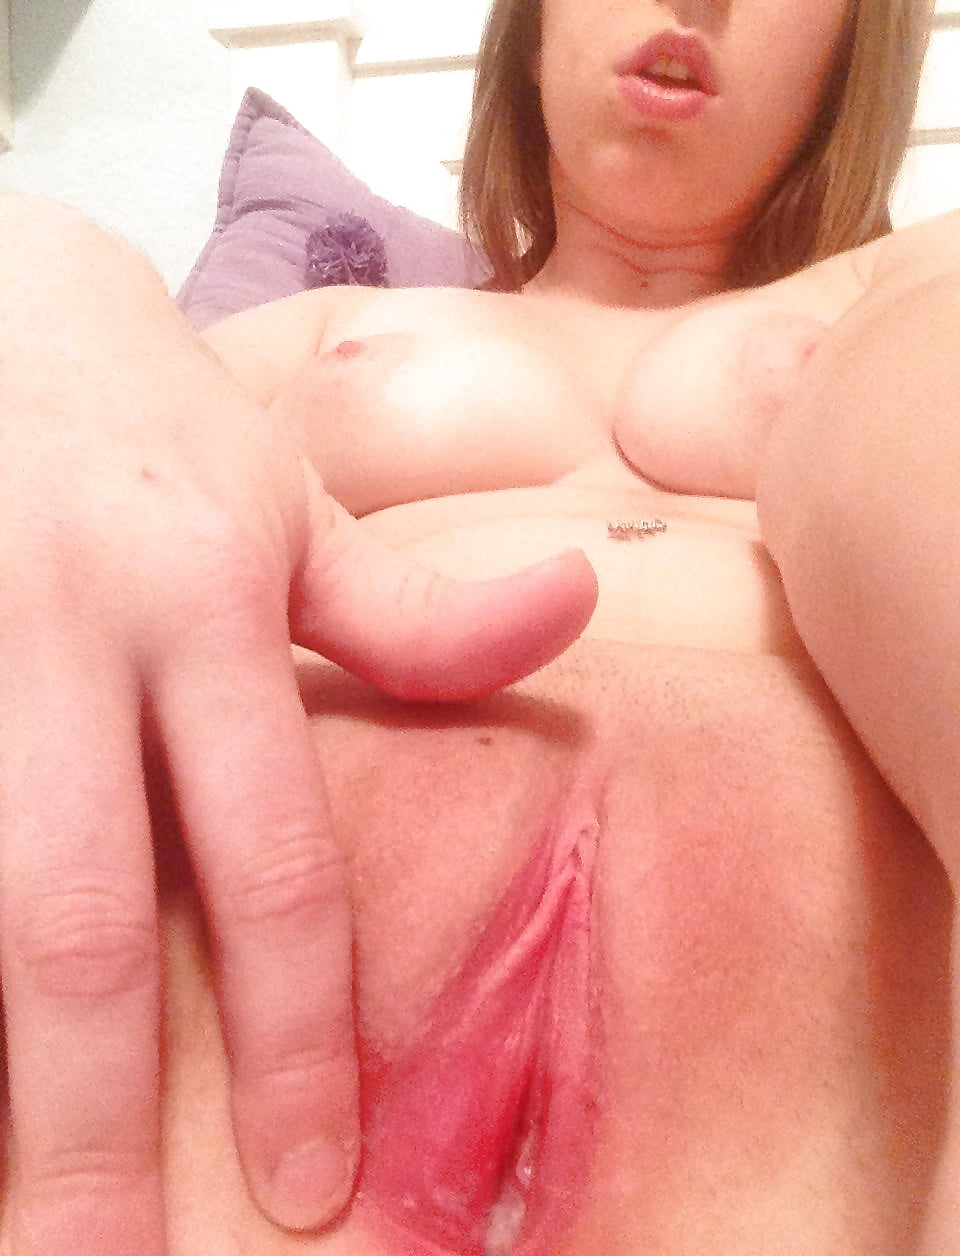 shaved-pussy-selfies-erotic-perverse-nasty-free-sex-stories